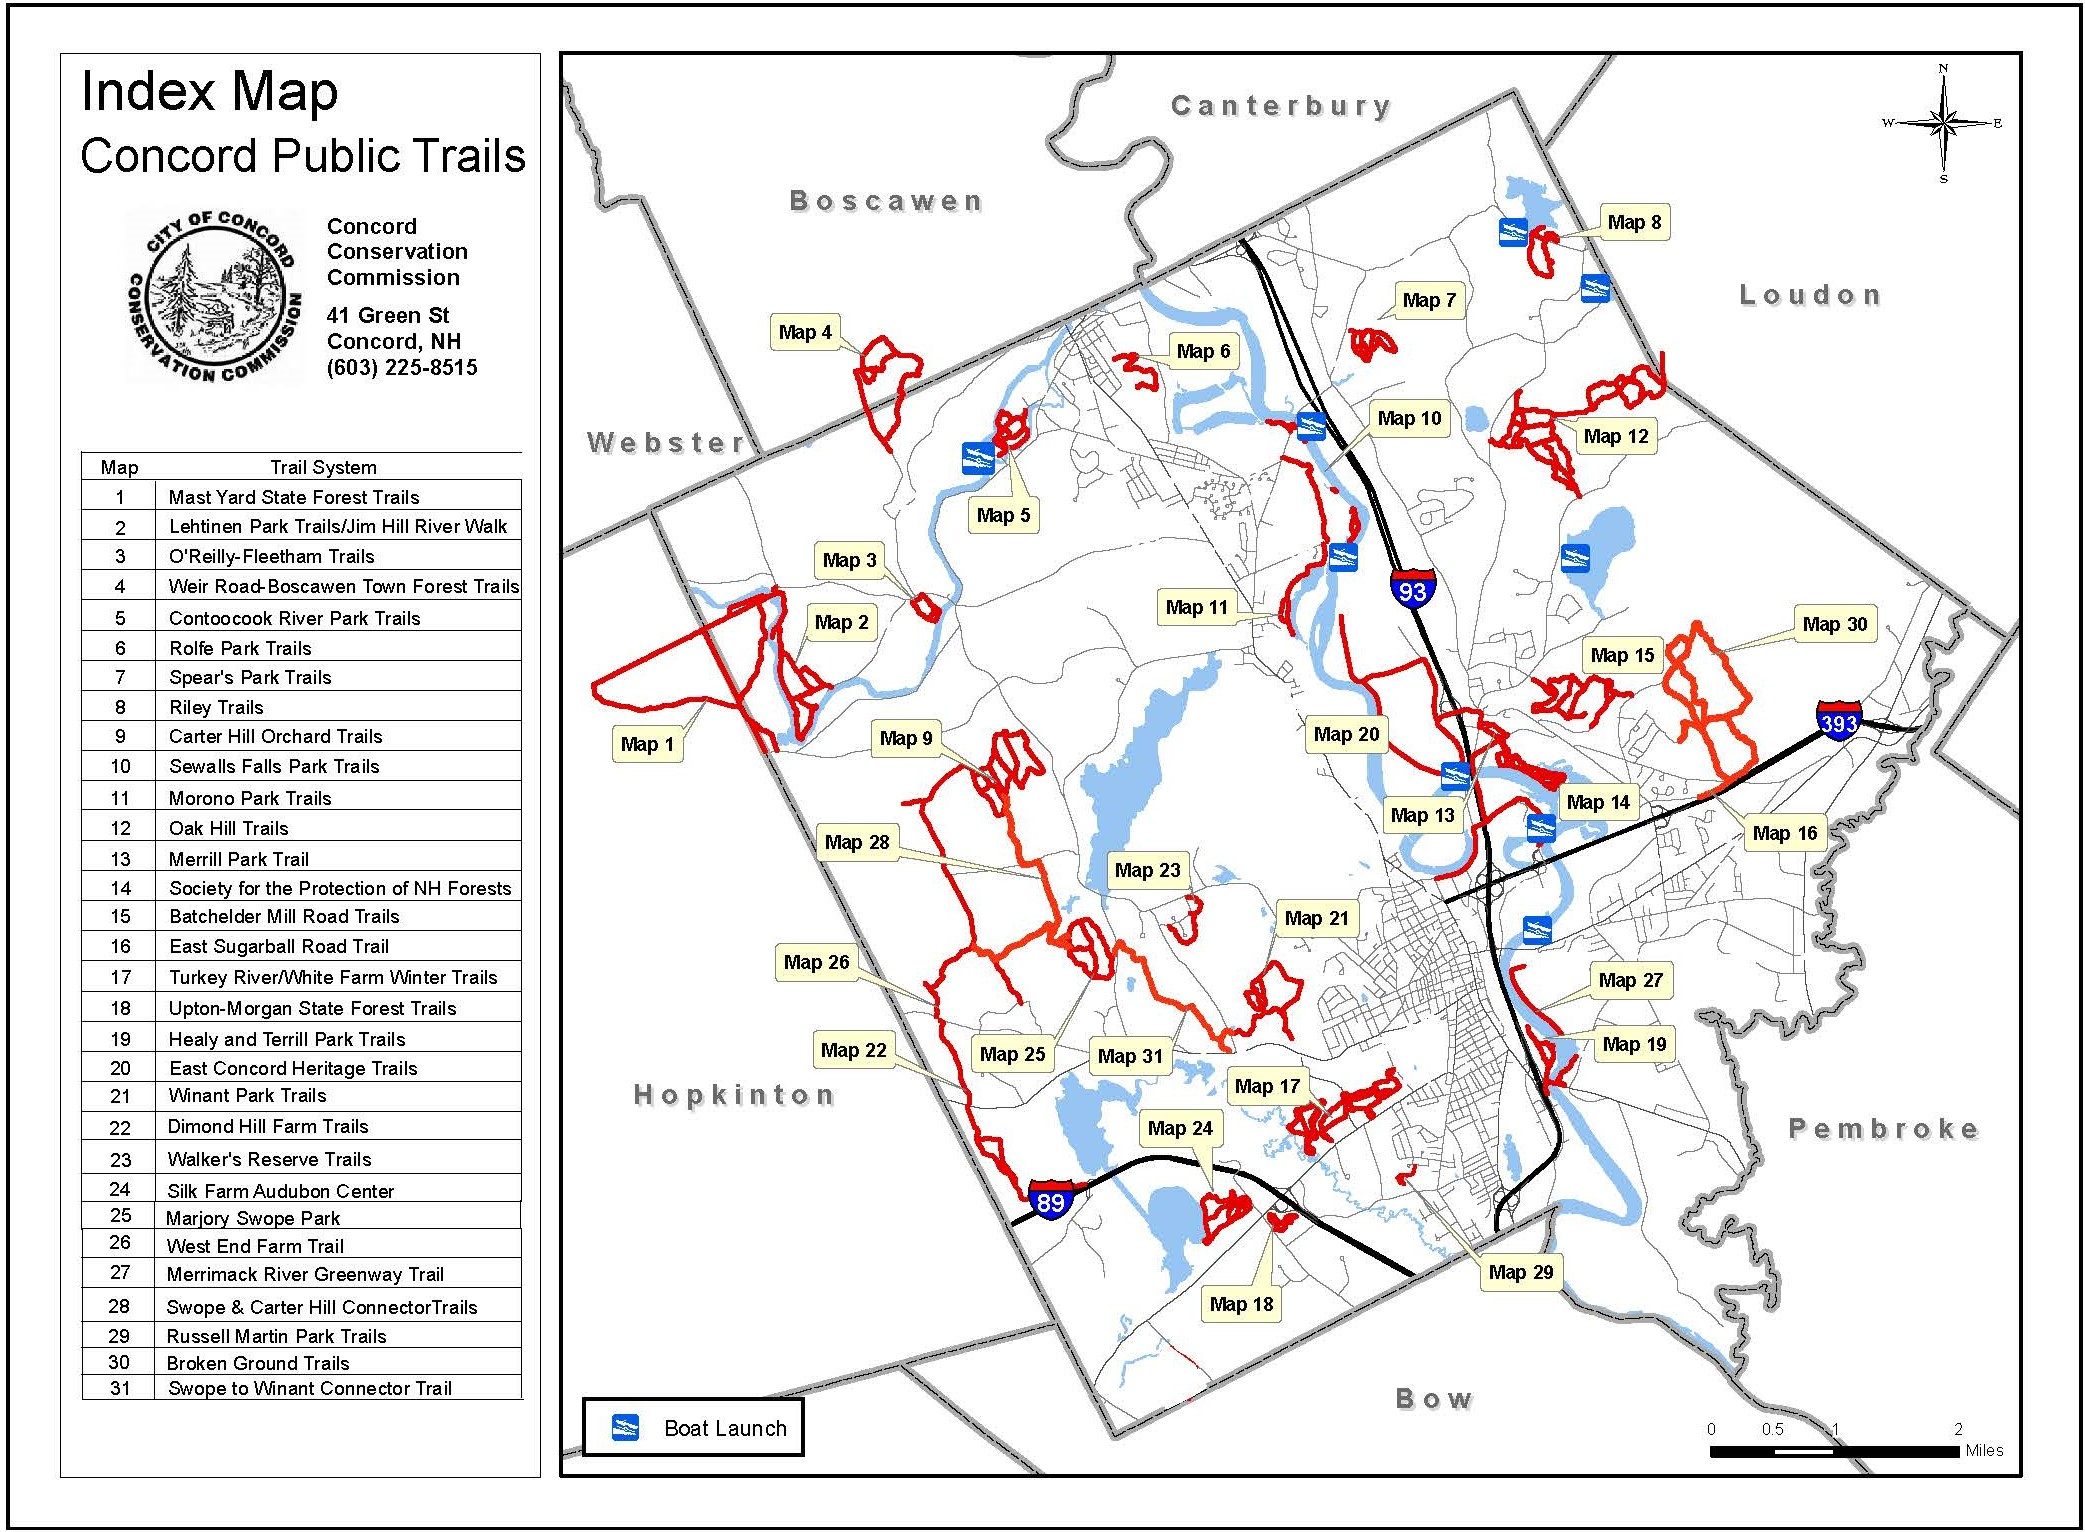 Concord Trails Index Map